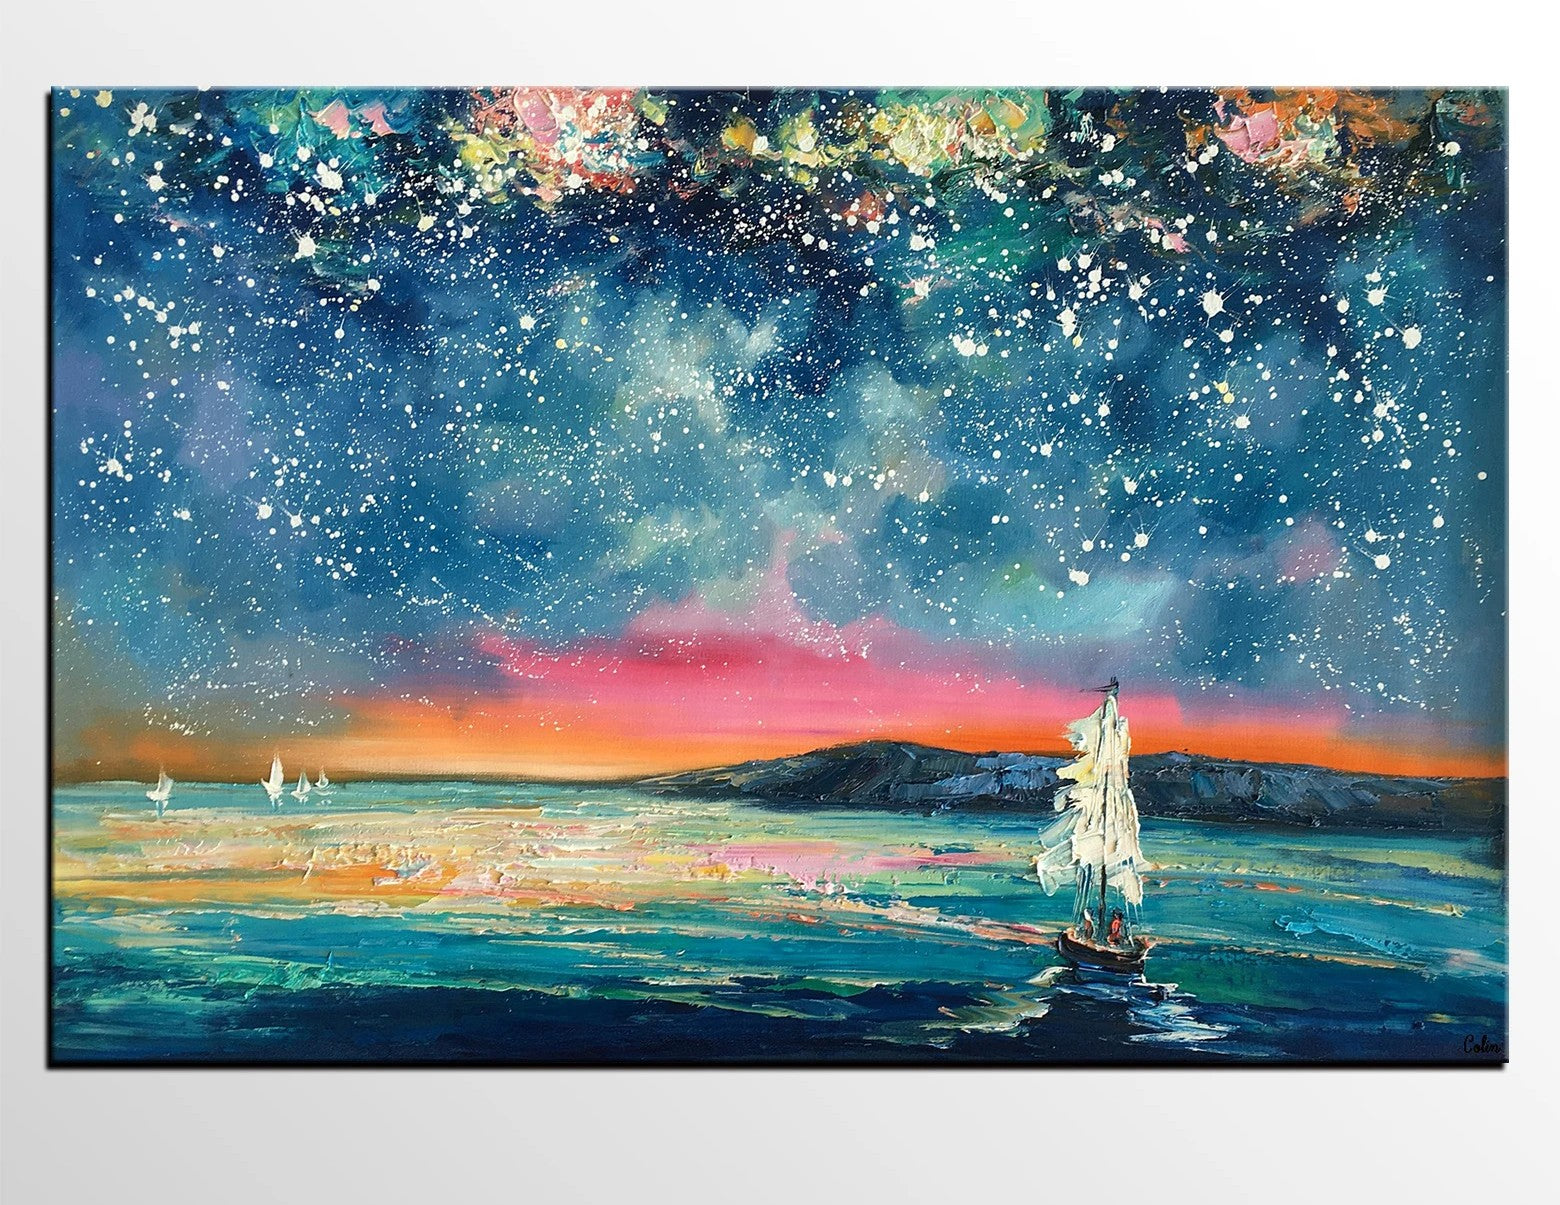 Landscape Oil Paintings, Sail Boat under Starry Night Sky Painting, Landscape Canvas Paintings, Custom Landscape Wall Art Paintings for Living Room